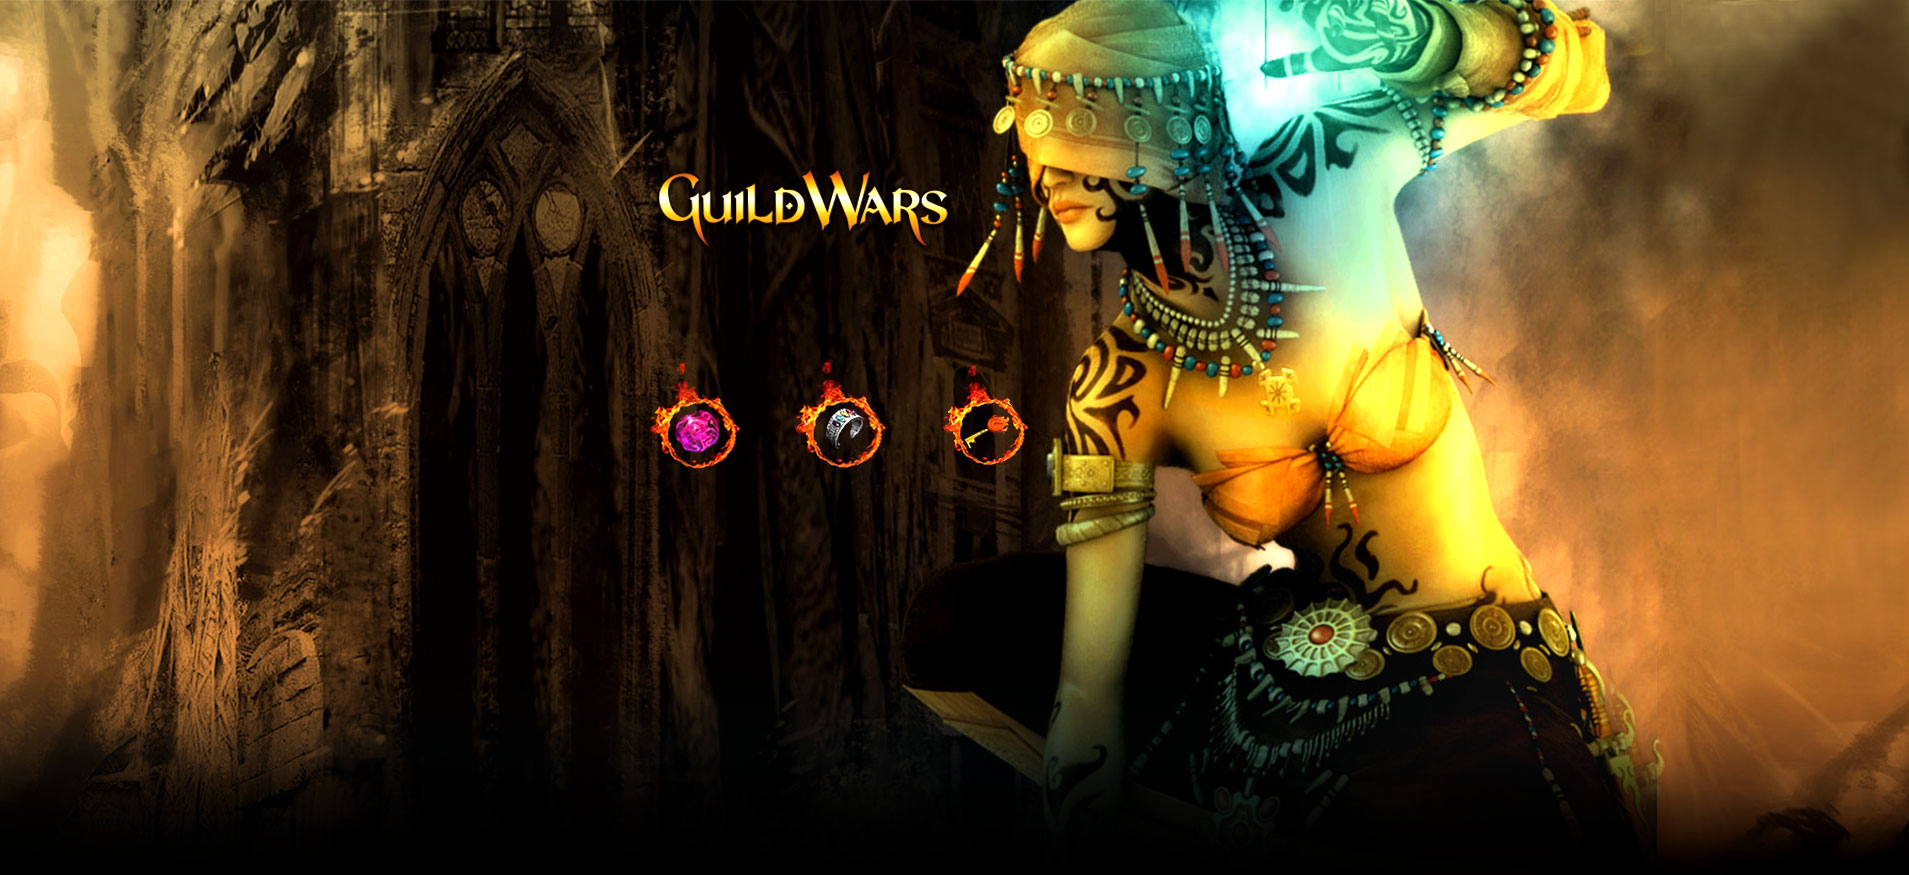 Buy GTAV money, FIFA Coins, Cabal Alz, WOW Gold, Path Of Exile items